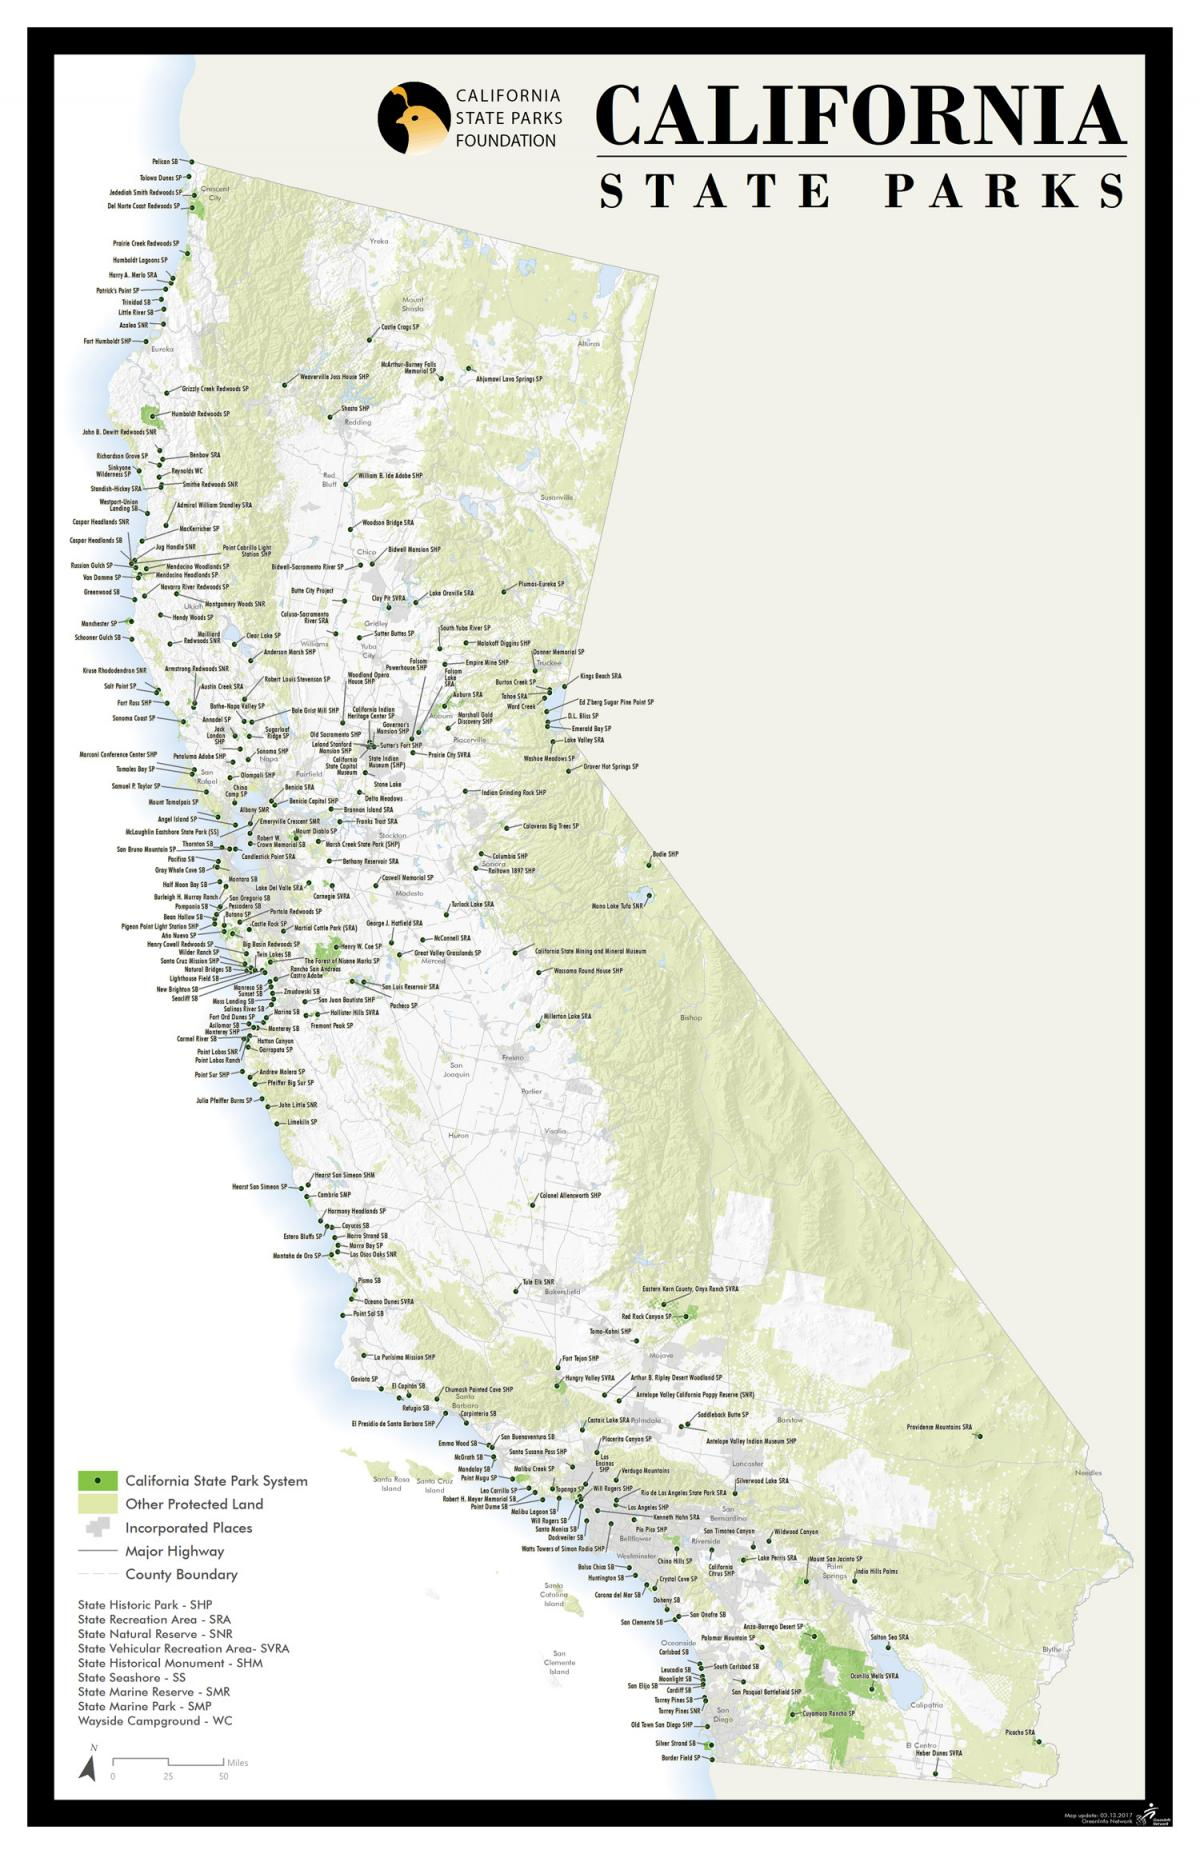 California State Park Foundation: Activities Guide - California State Campgrounds Map